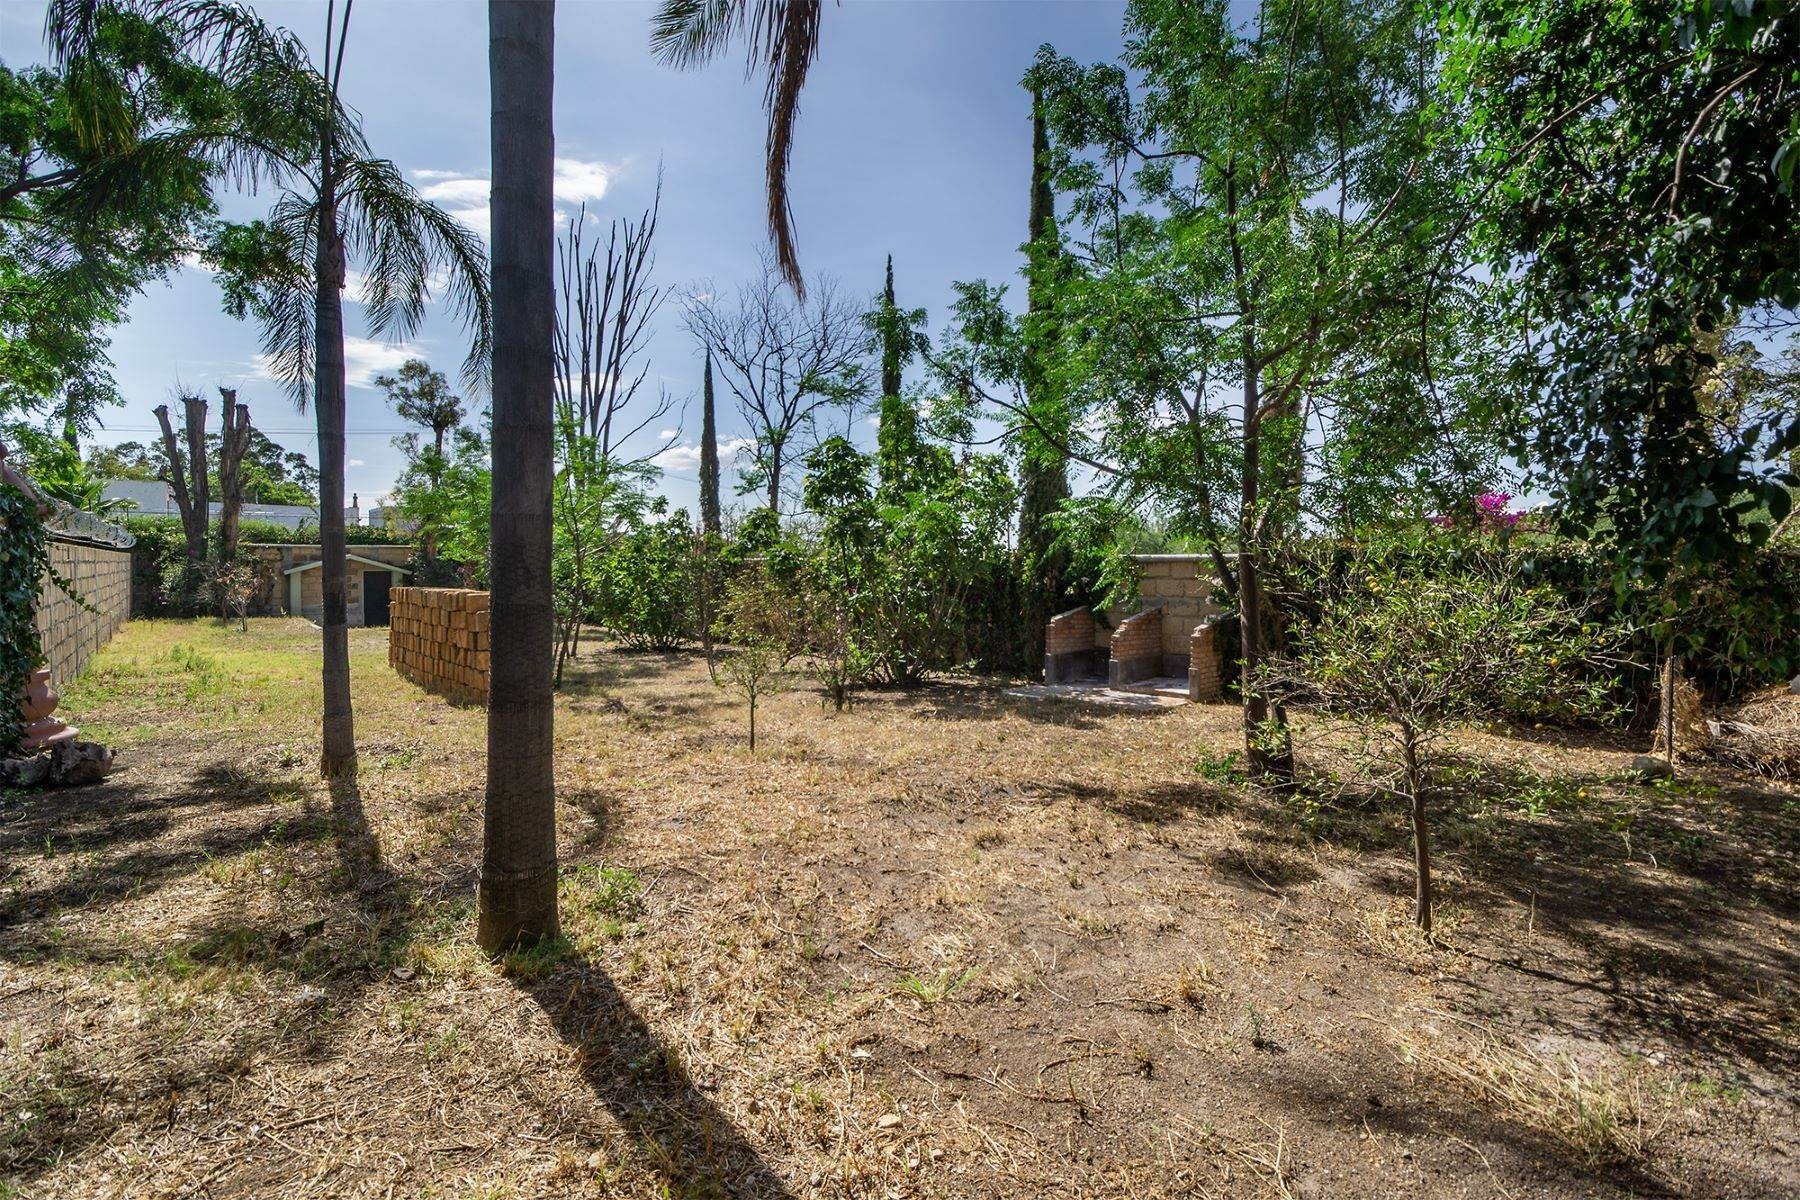 9. Land for Sale at Lote Pocitos Los Frailes, San Miguel De Allende, Guanajuato Mexico